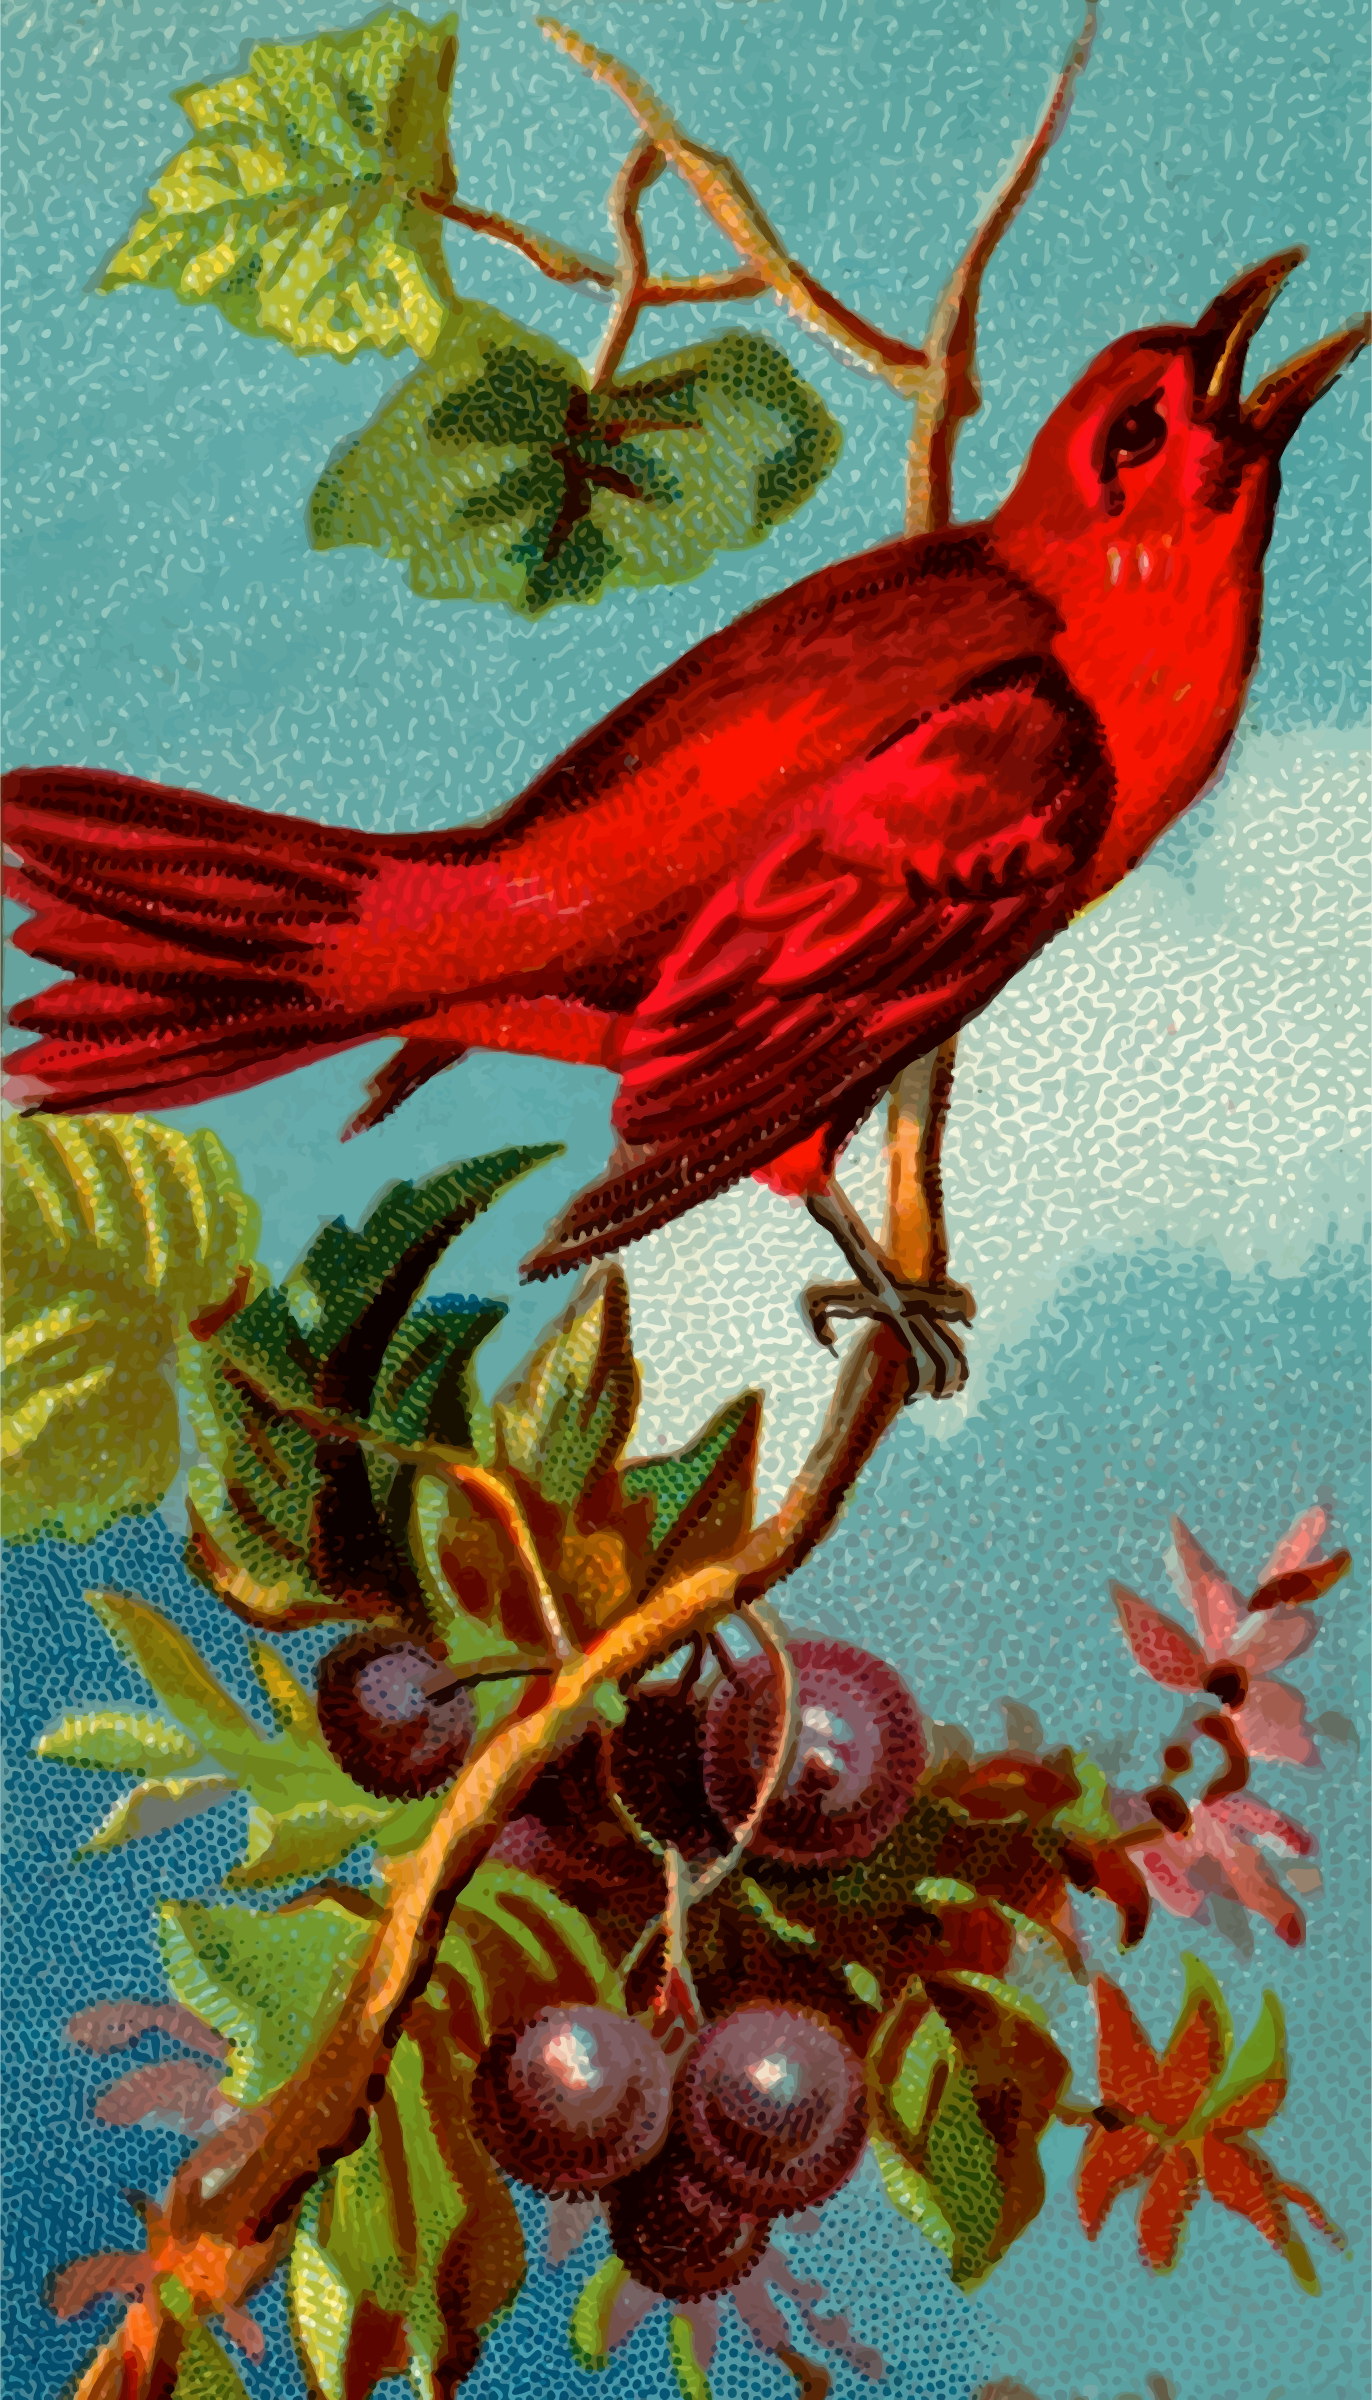 Cigarette card - Redbird by Firkin